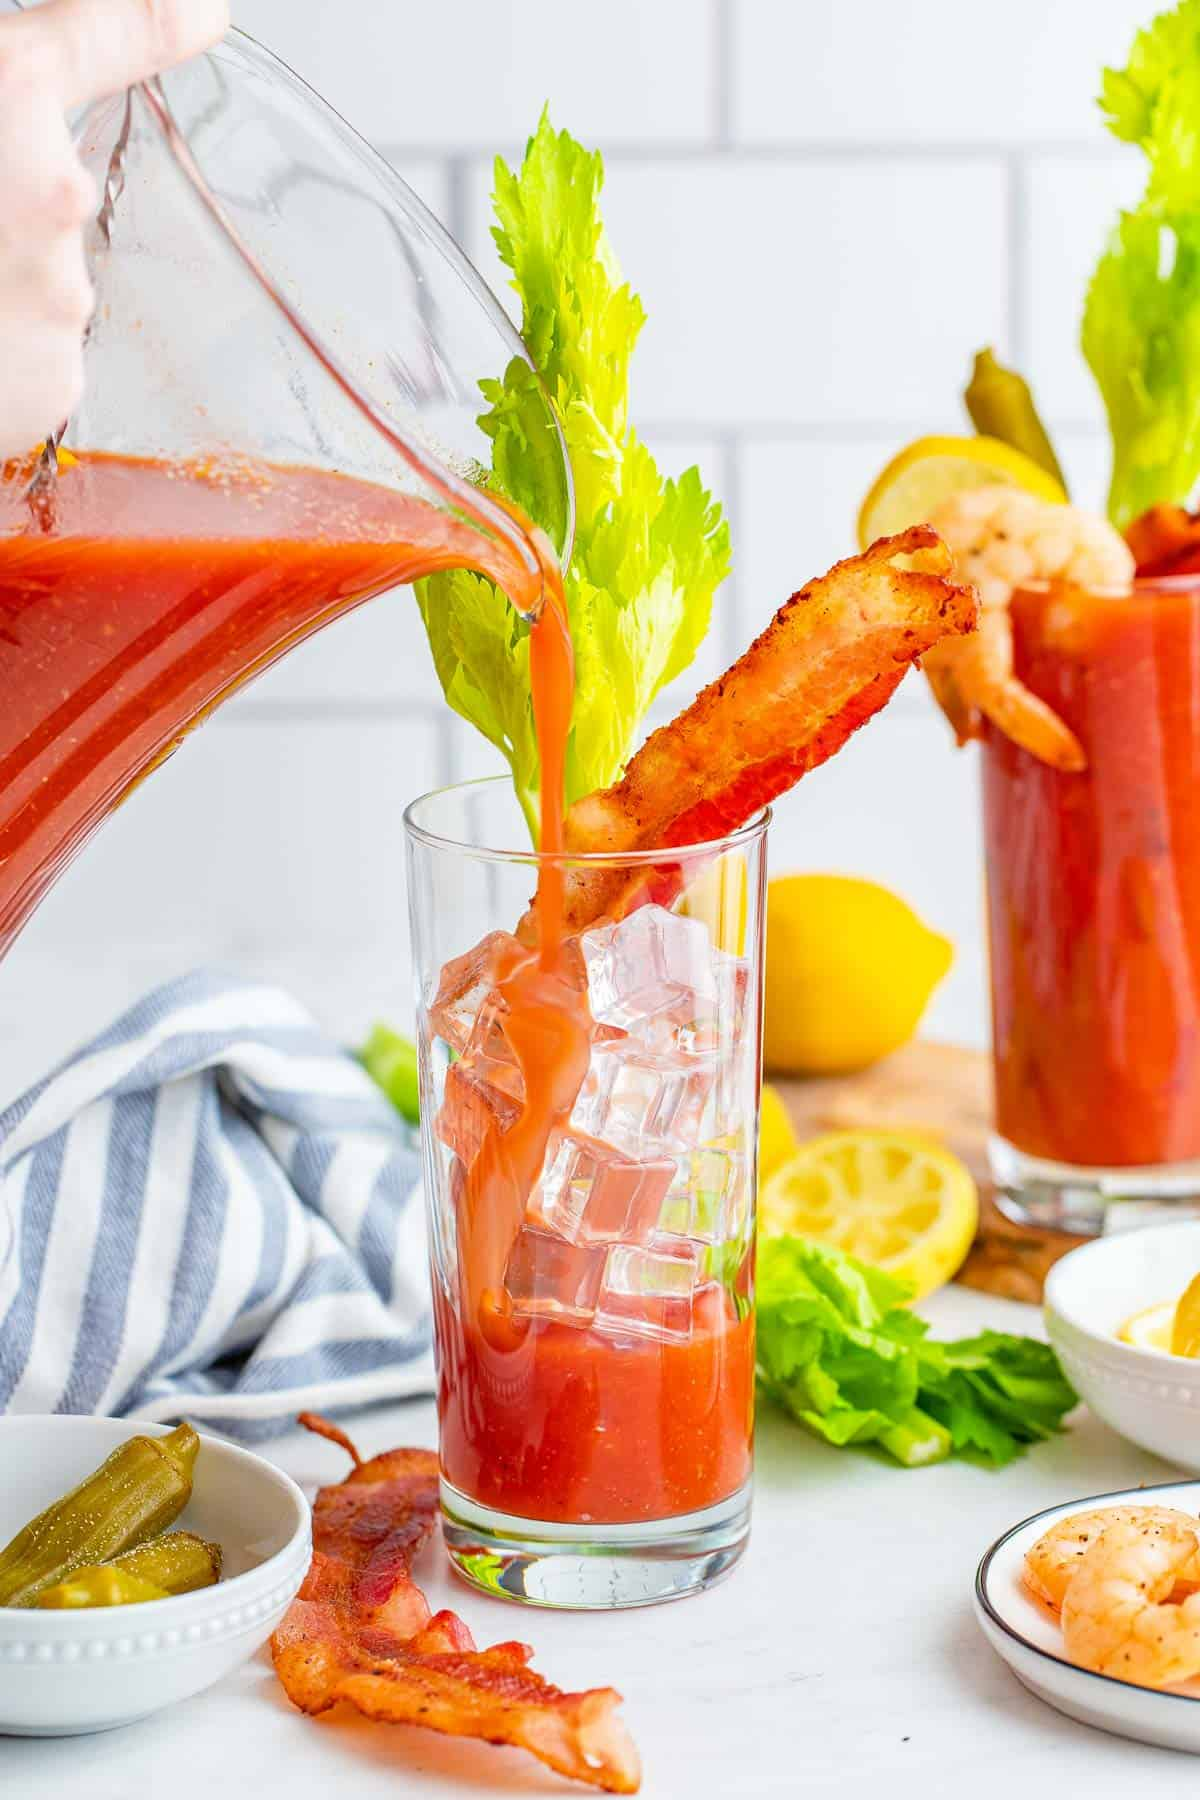 Tomato juice based bloody mary being poured over ice.